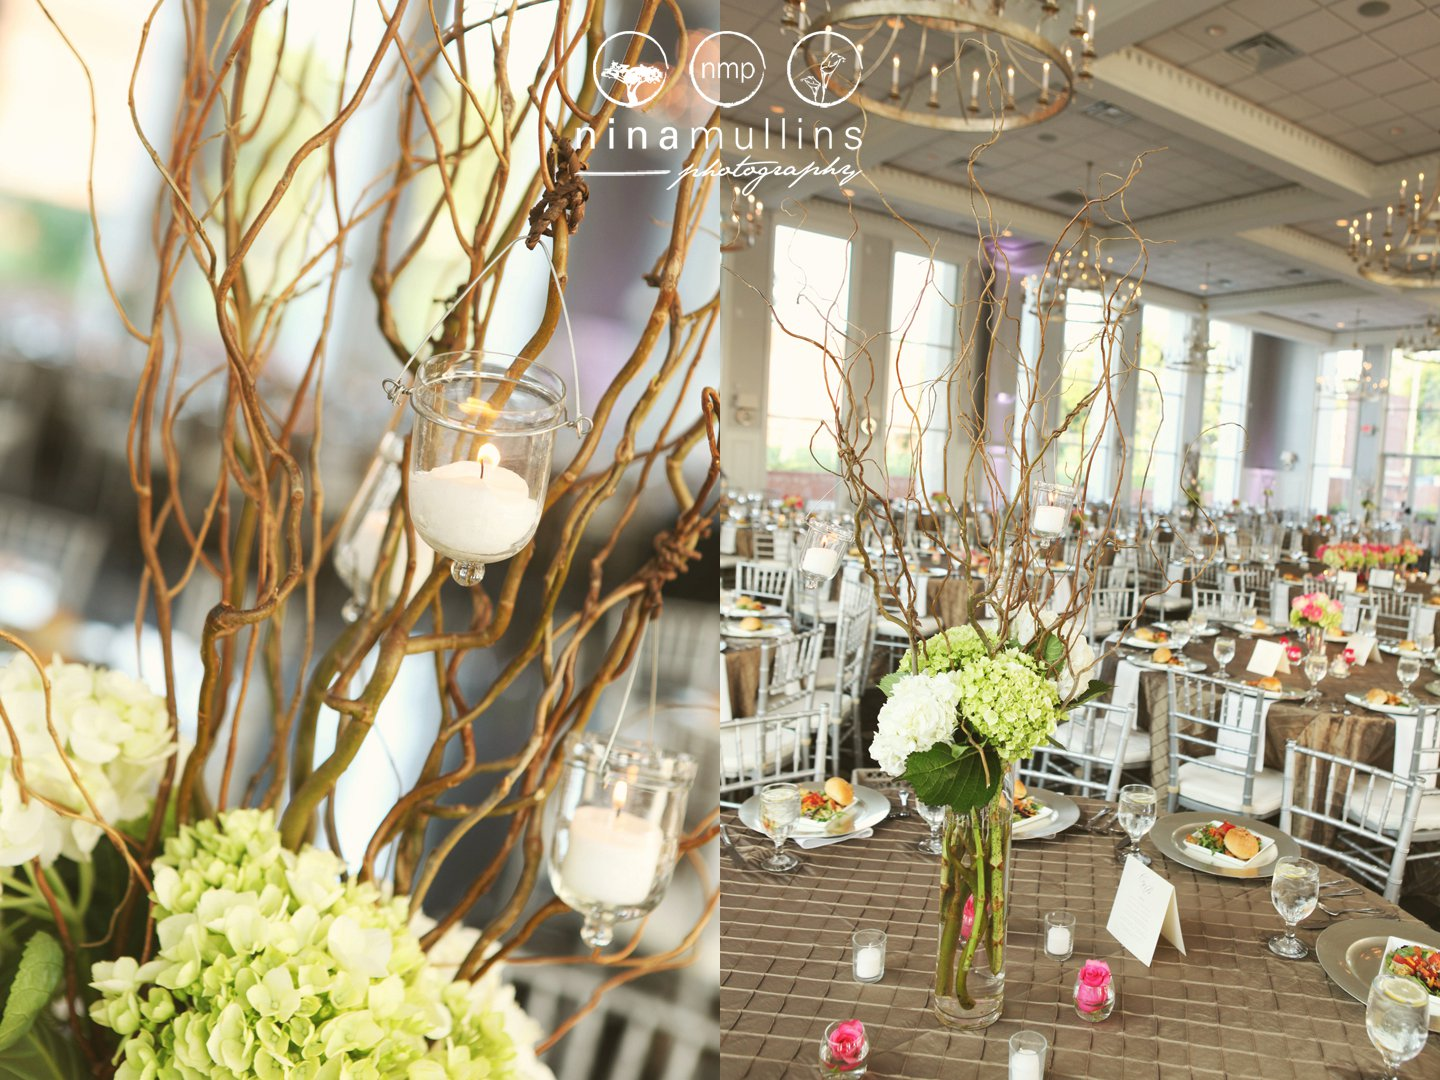 Curly Willow with hanging candle votives green and white hardrengeas